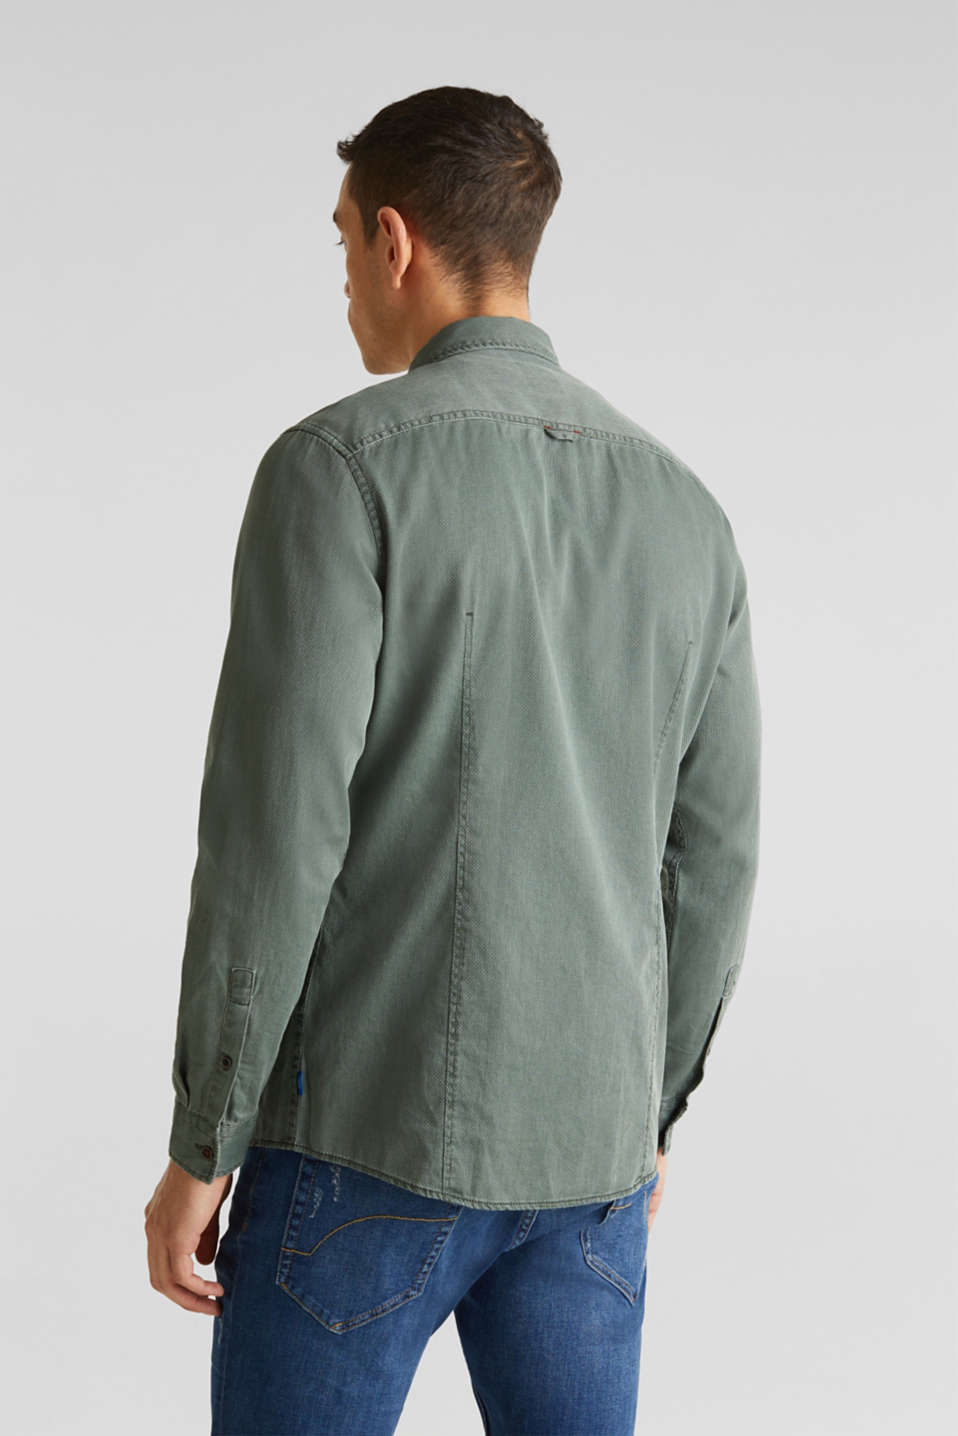 Shirt with a checked texture, 100% cotton, KHAKI GREEN 5, detail image number 3